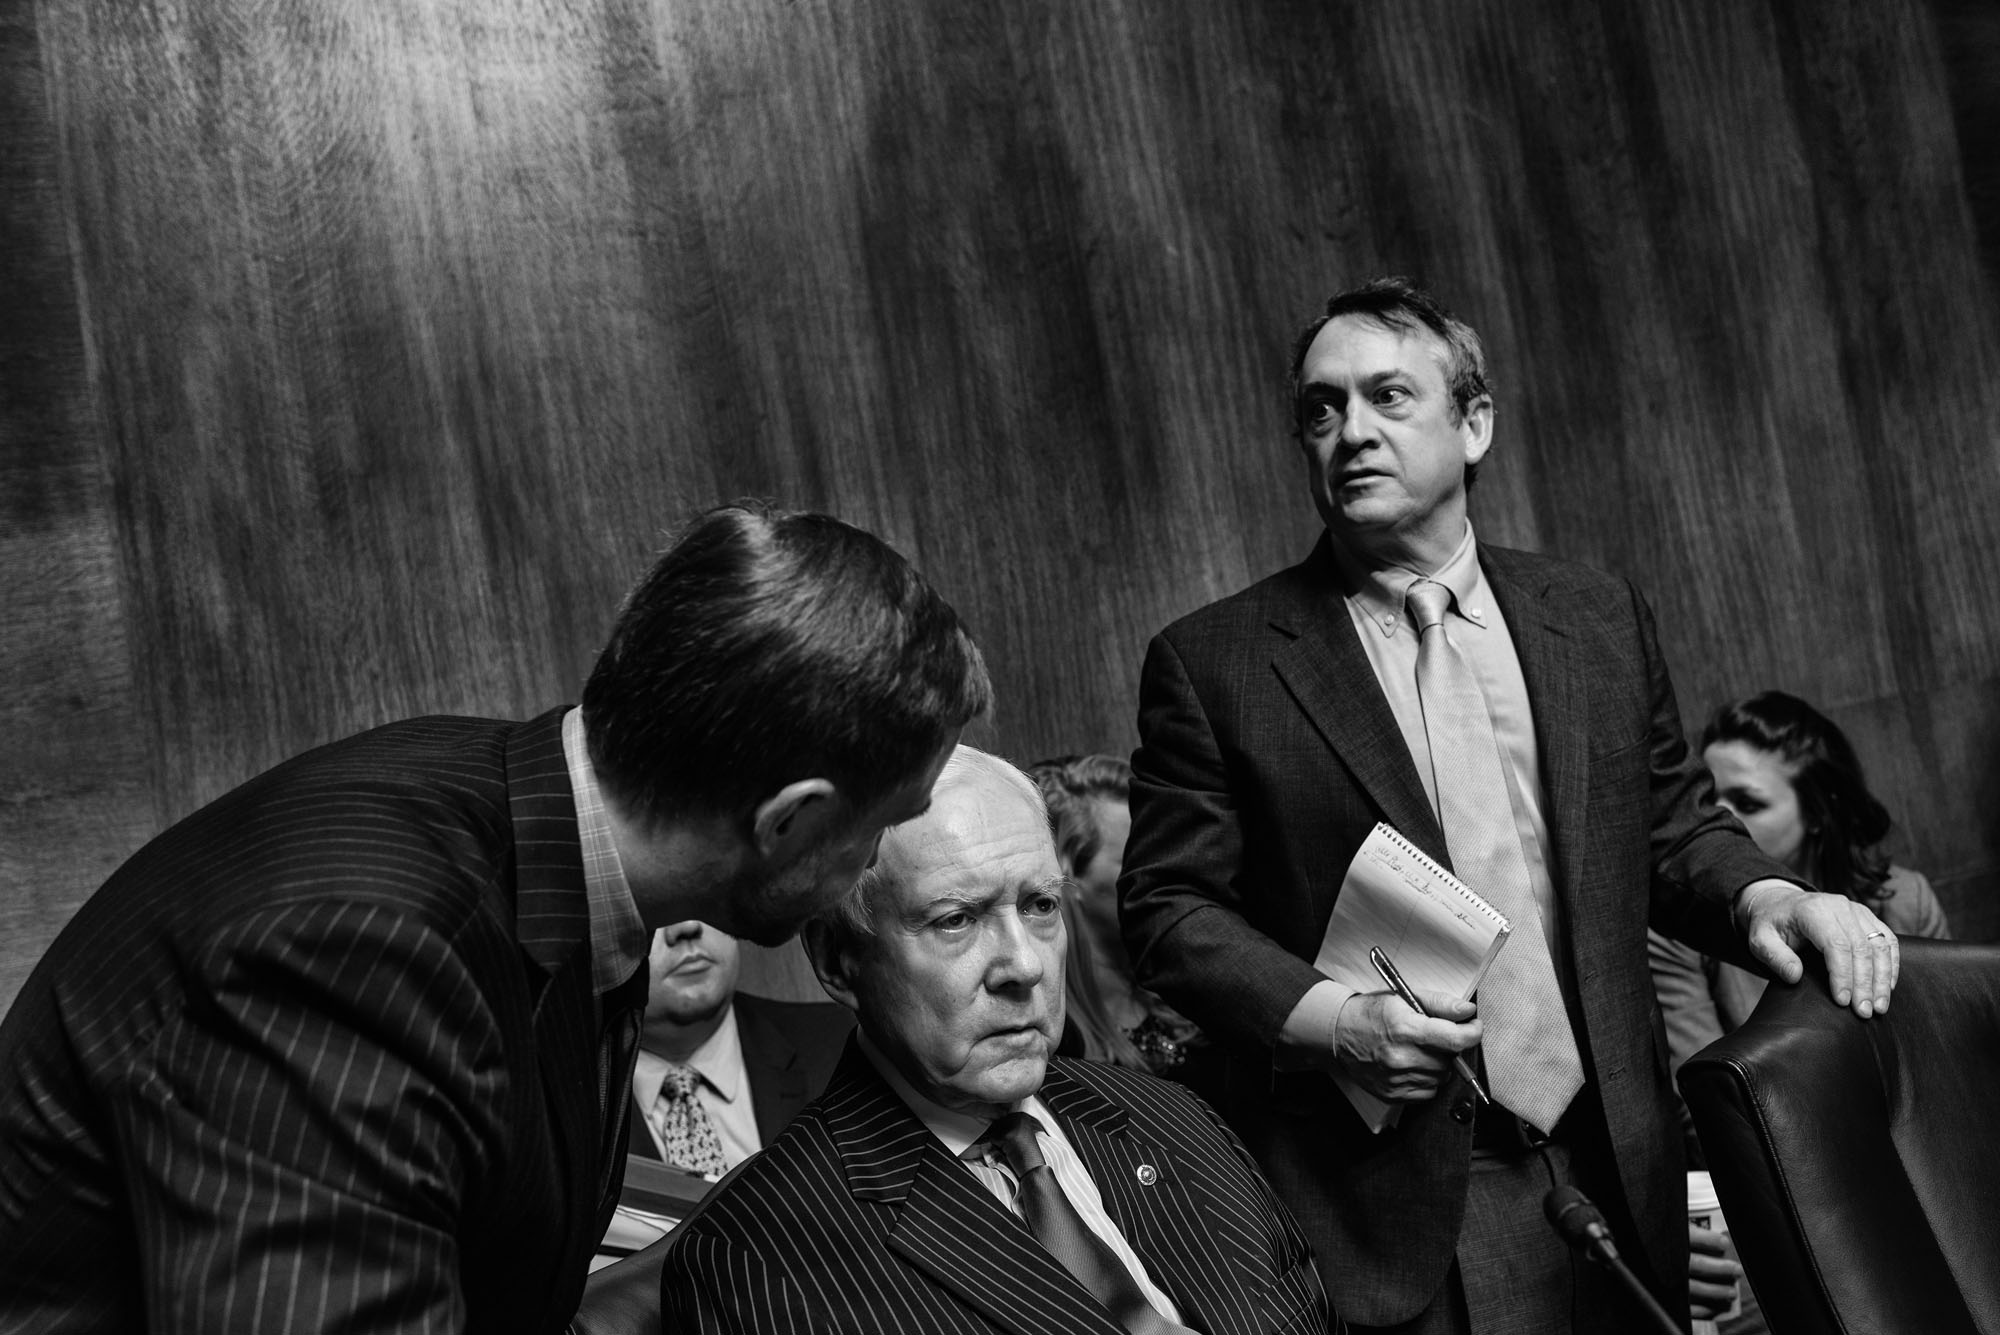 Senator Orrin Hatch convenes with aides before the start of the Senate Judiciary committee confirmation hearing for Rod Rosenstein to become deputy attorney general, on March 7, 2017.